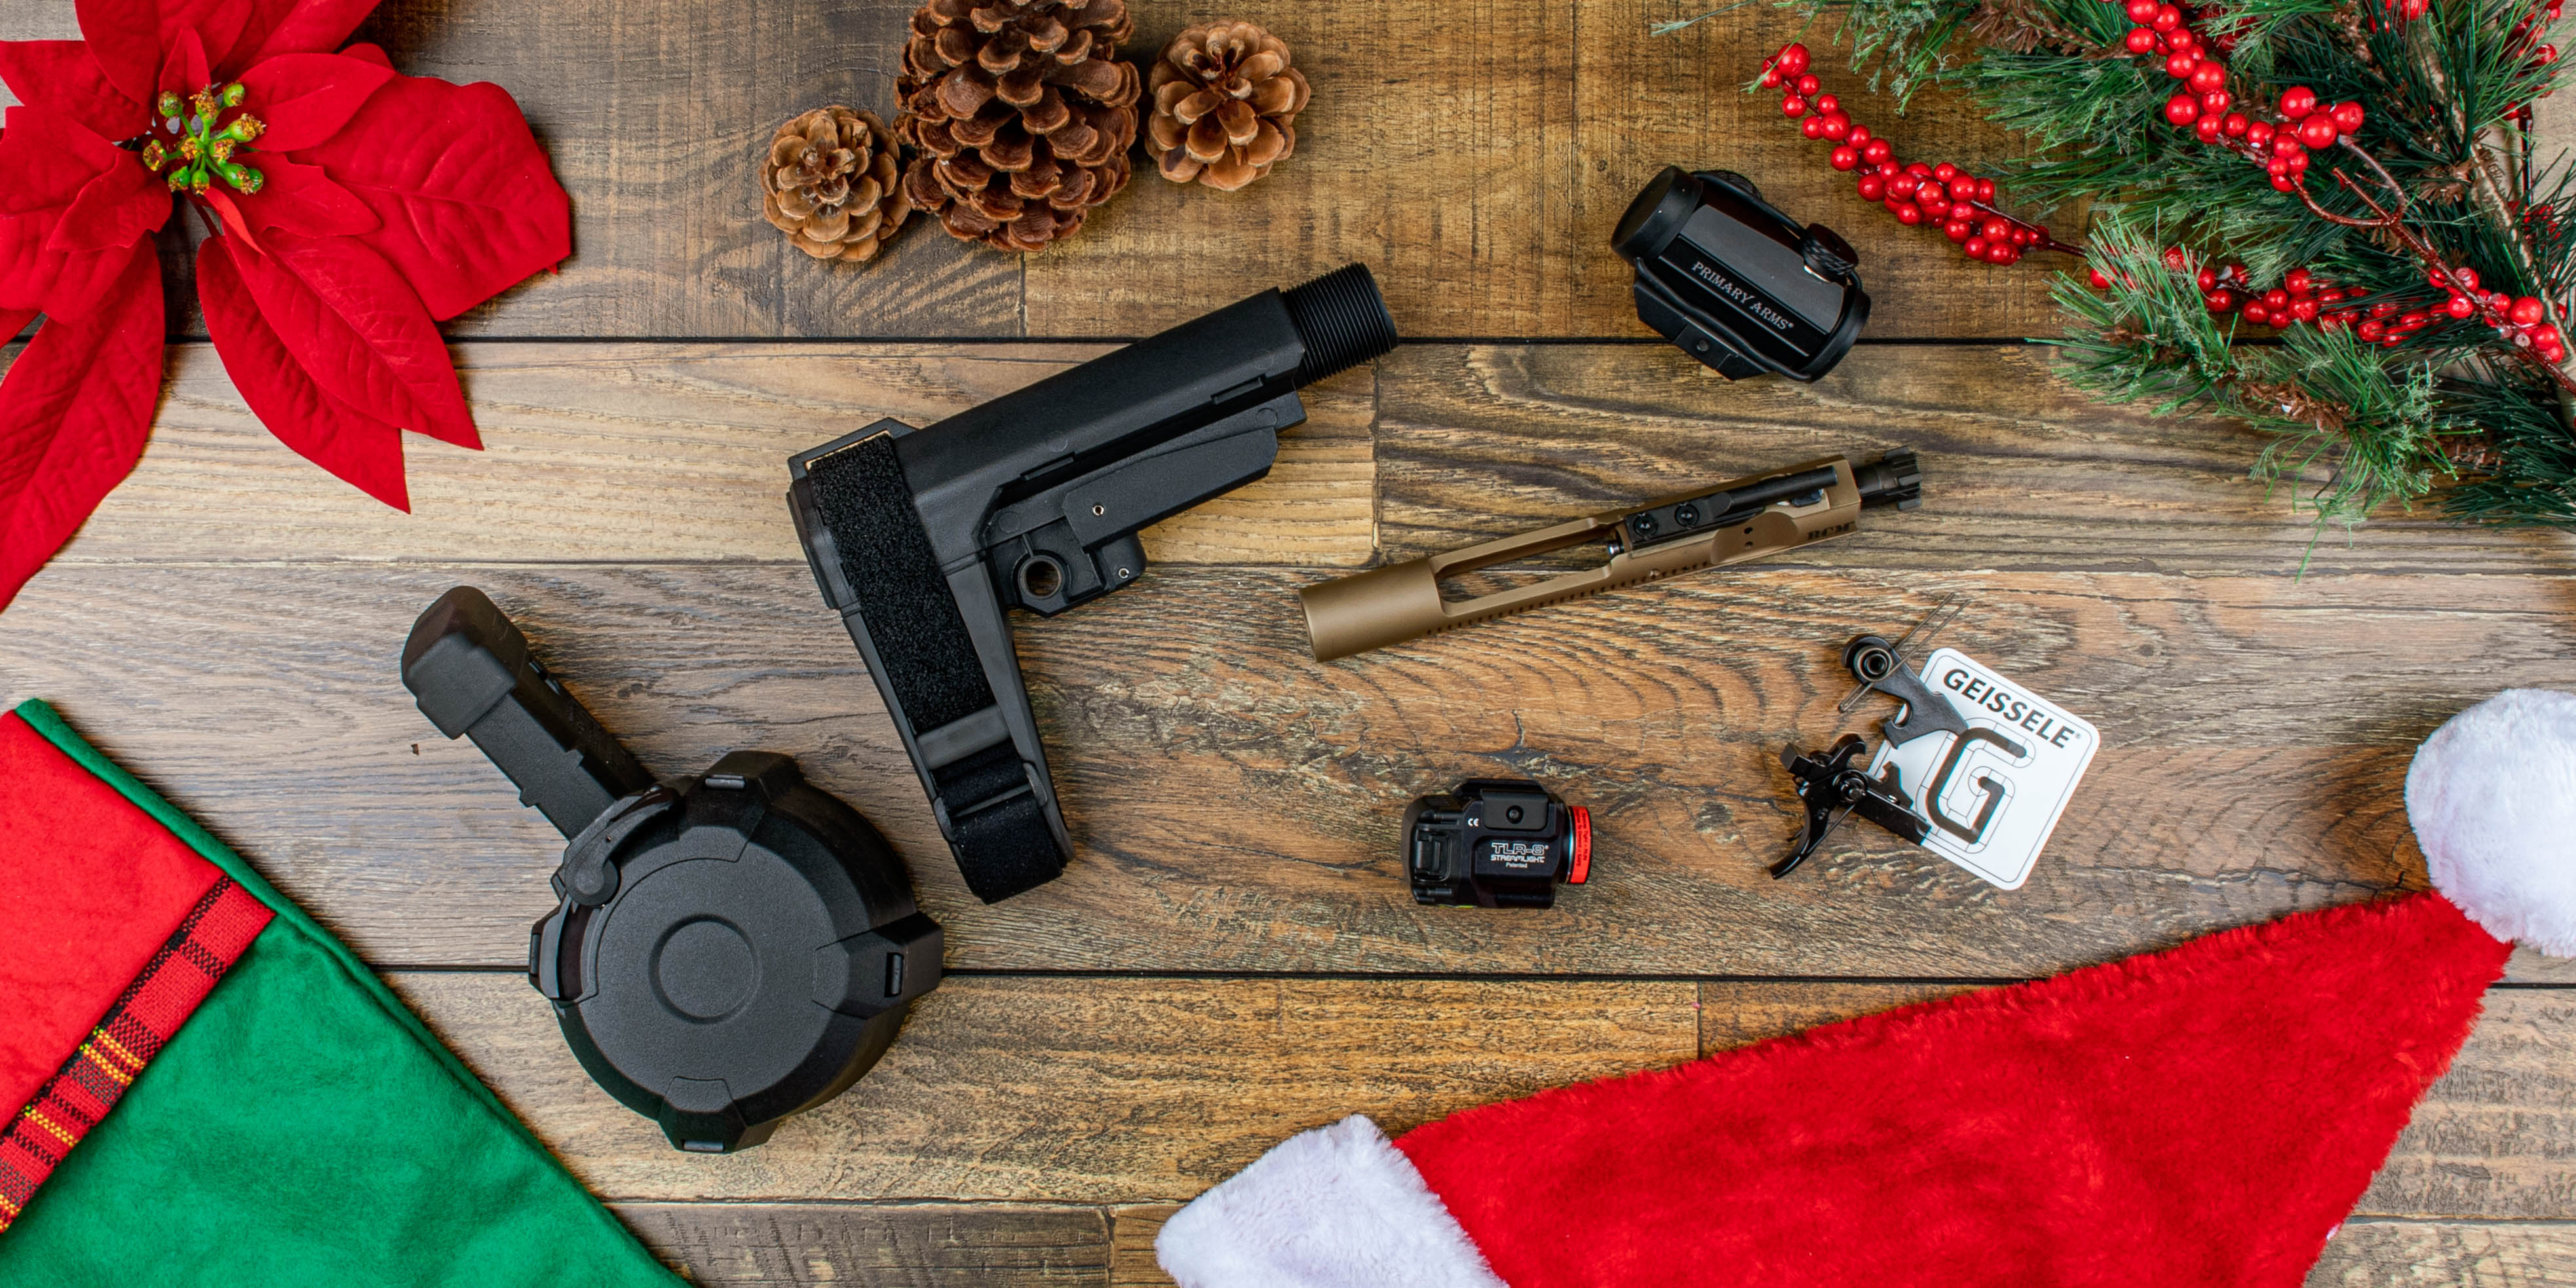 Primary Arms gifts for close friends including Magpul, SB Tactical, Geissele Automatics, and Primary Arms Optics.